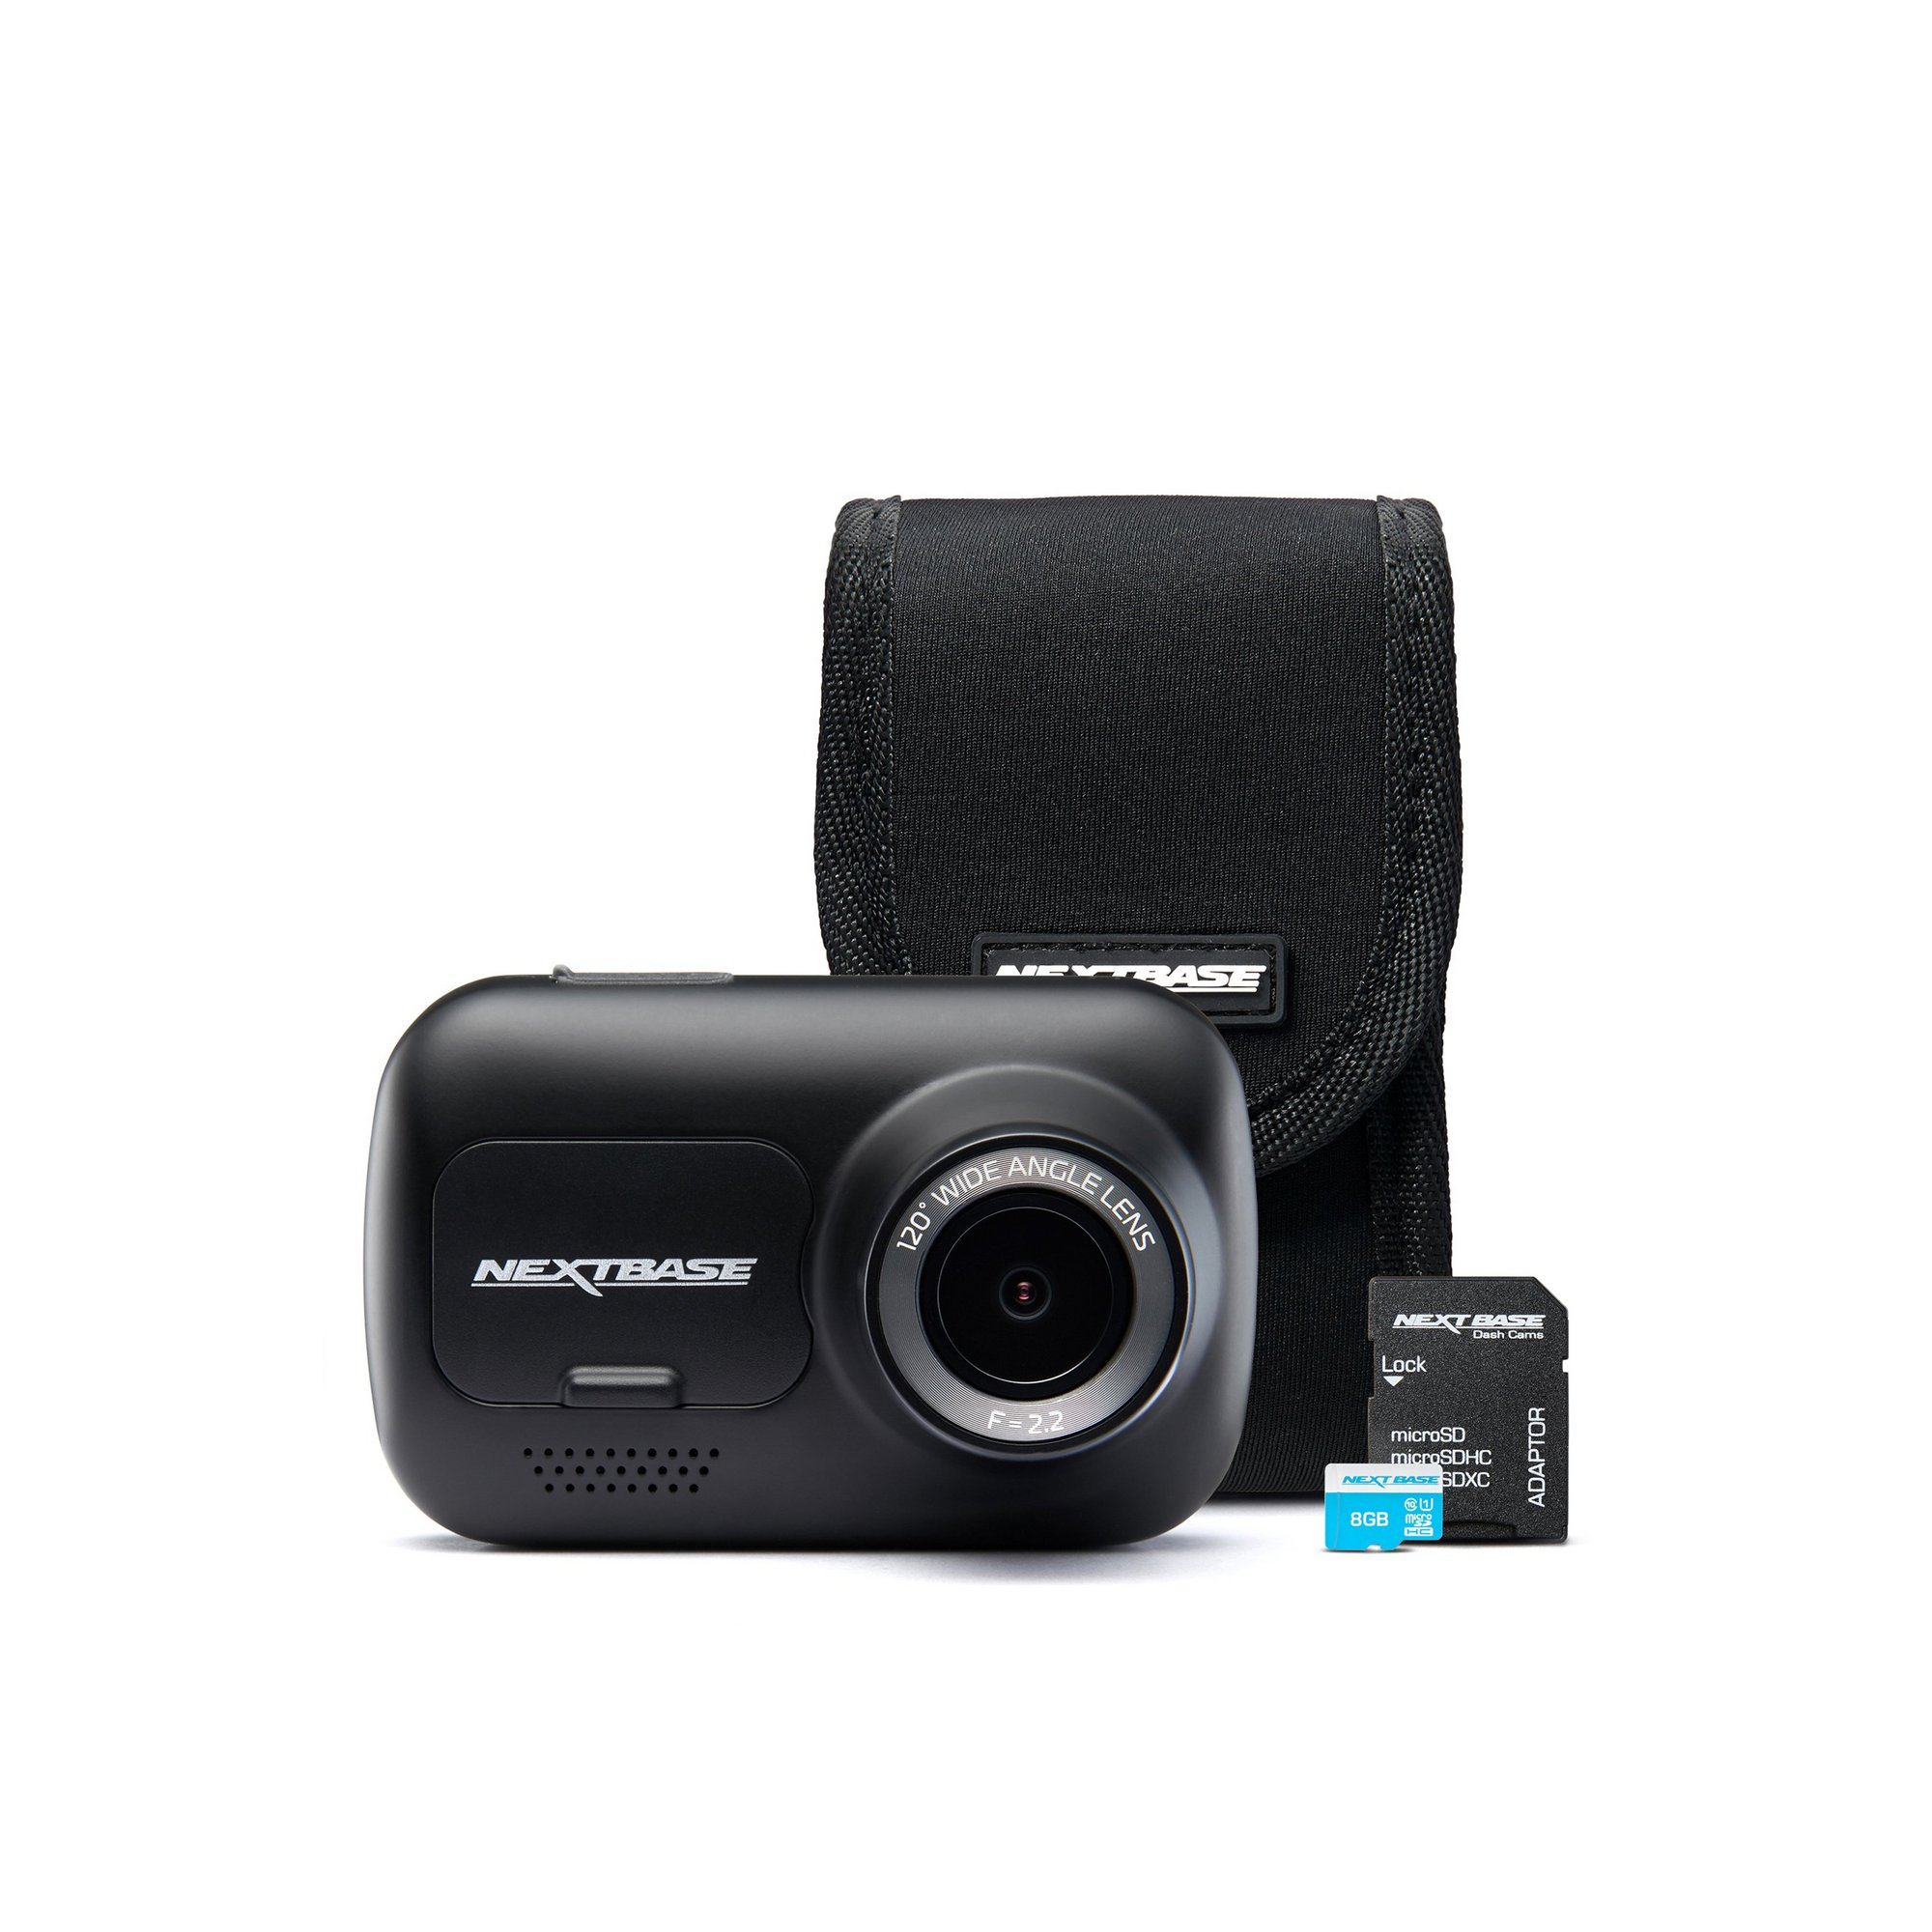 Image of Nextbase 122 Dash Cam and Accessories Bundle